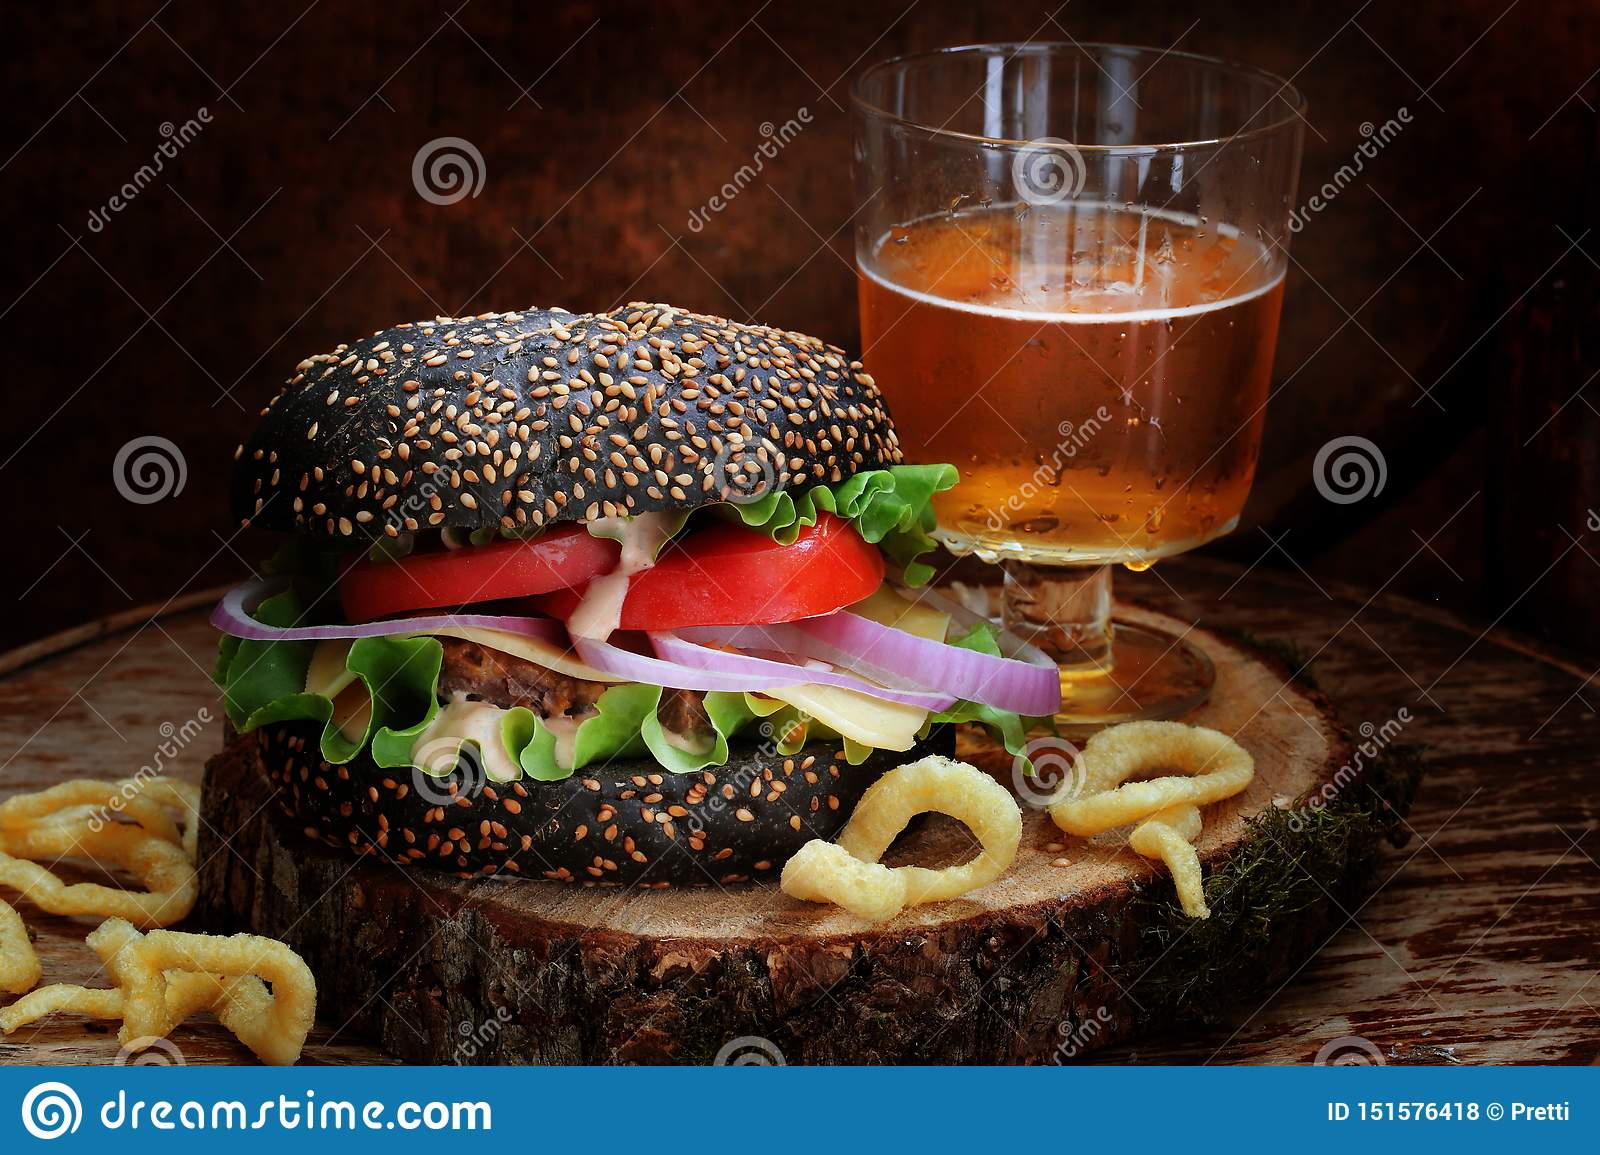 Black burger with beer and onion rings